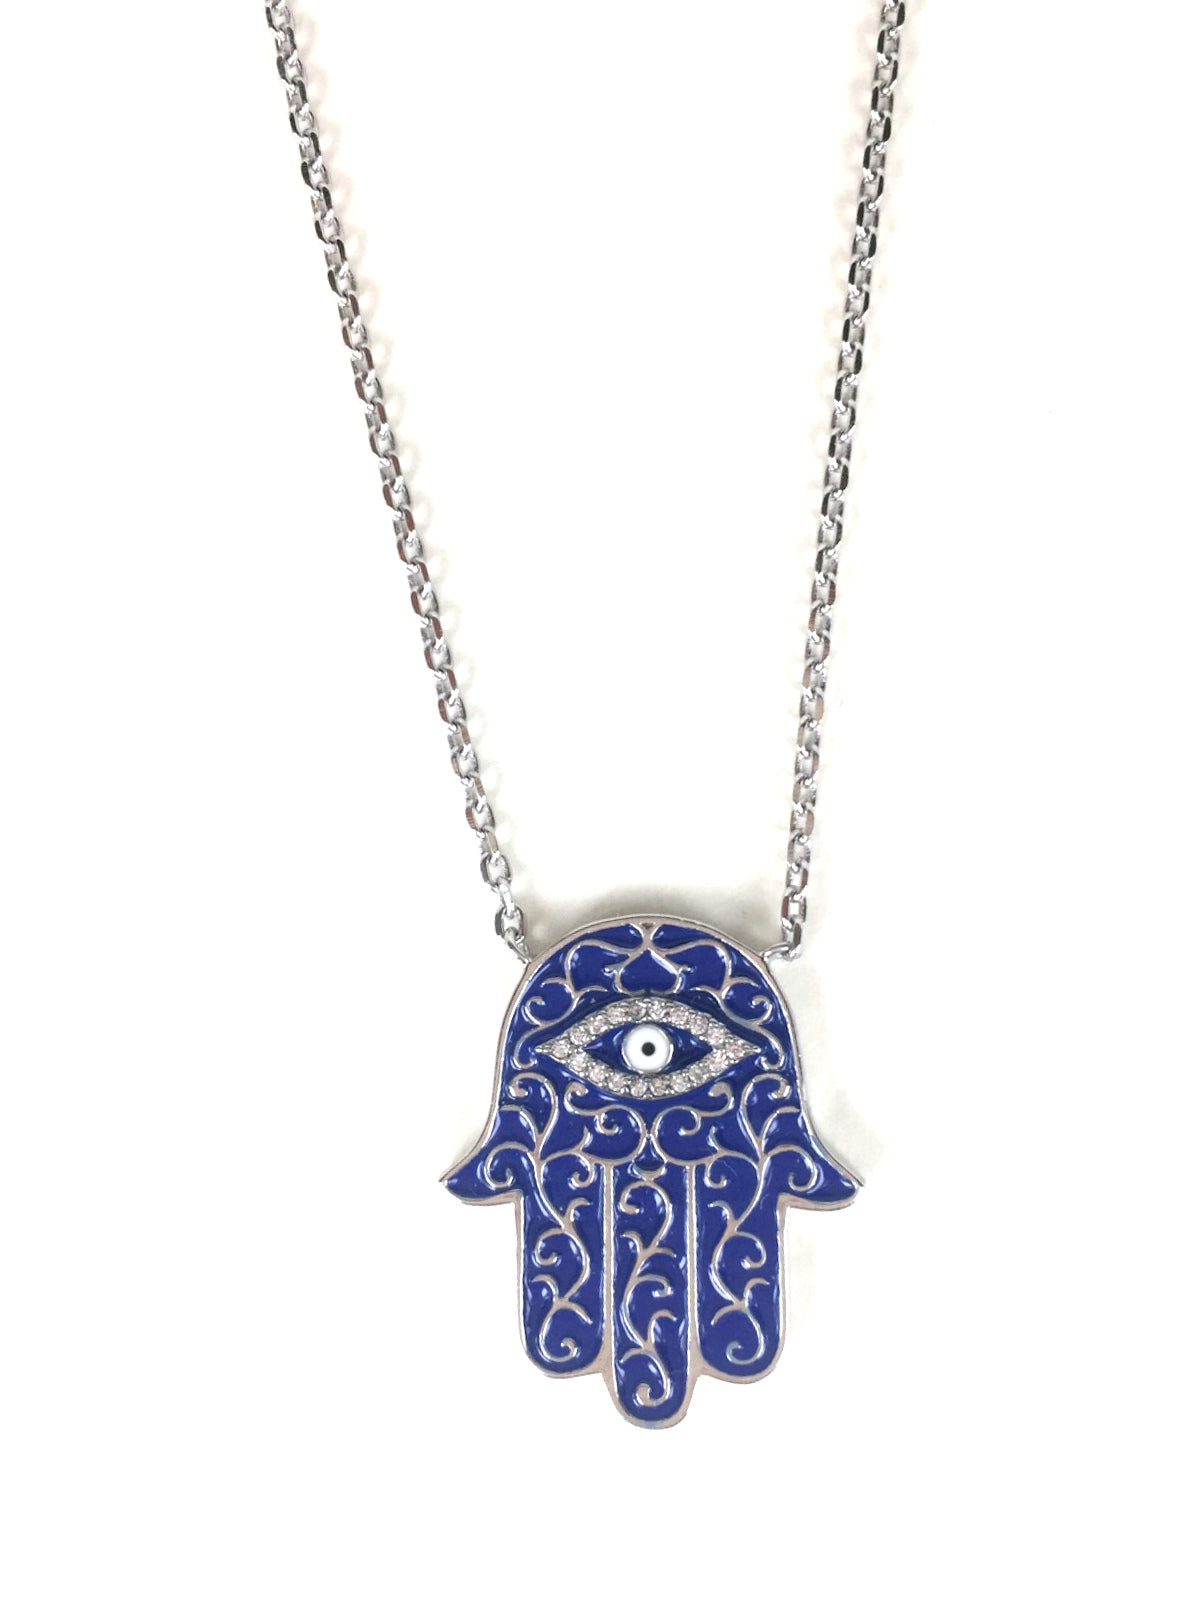 HAMSA PAVE CZ STERLING SILVER NECKLACE